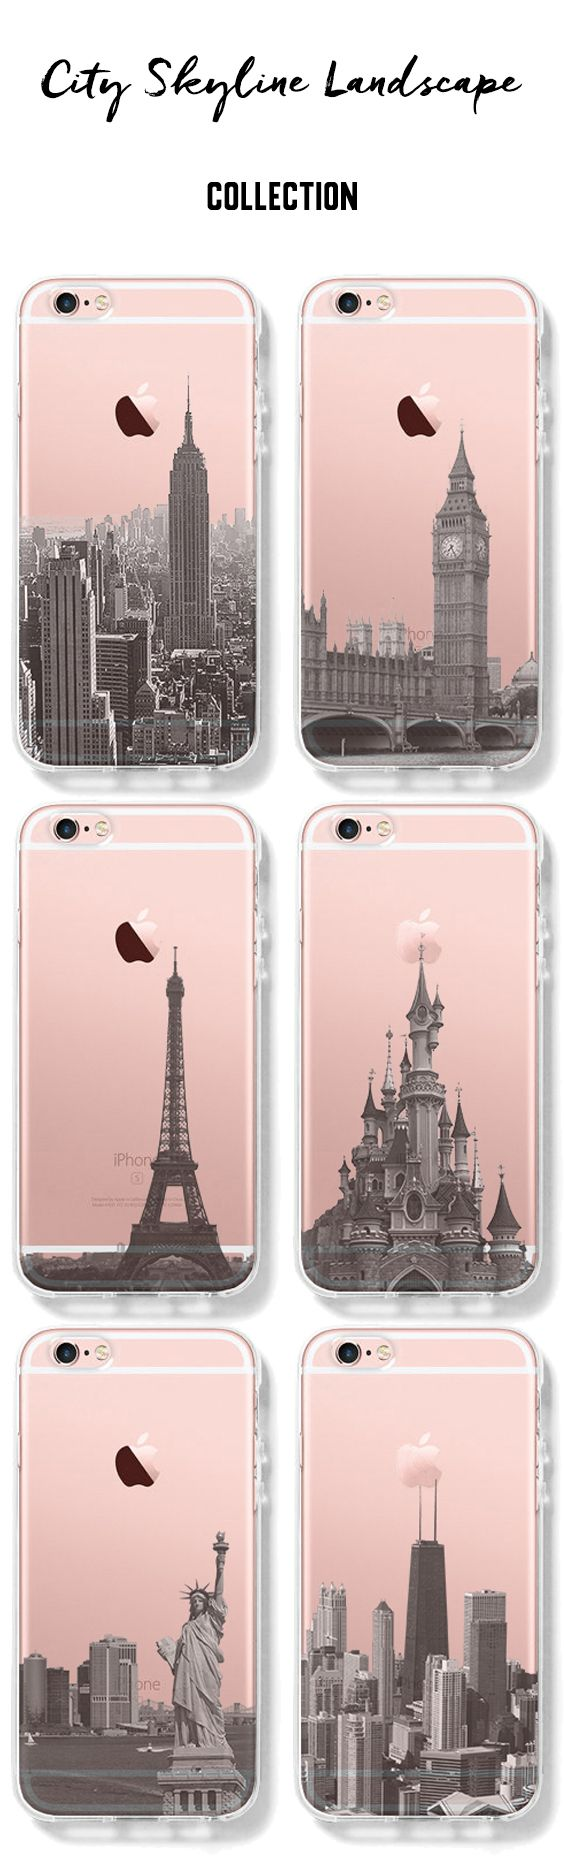 City Skyline Unique design iPhone cases Cell Phones & Accessories - Cell Phone, Cases & Covers - http://amzn.to/2jXZVL6